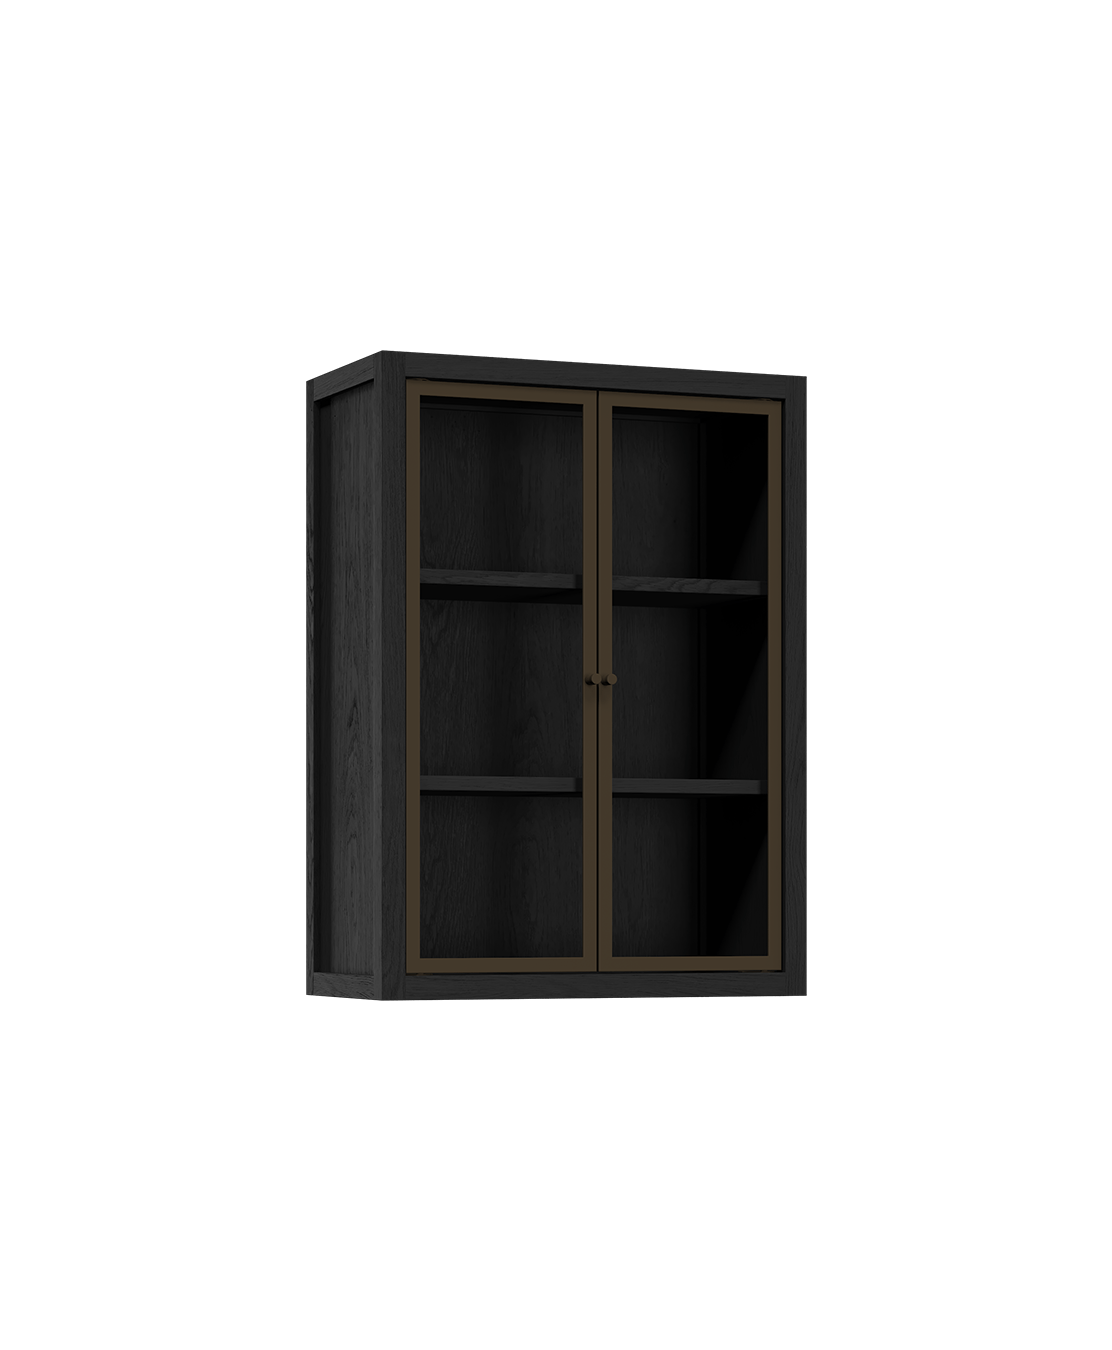 coquo radix midnight black stained oak solid wood modular 2 glass doors wall upper kitchen cabinet 12 inch C1-W-2412-0201-BK